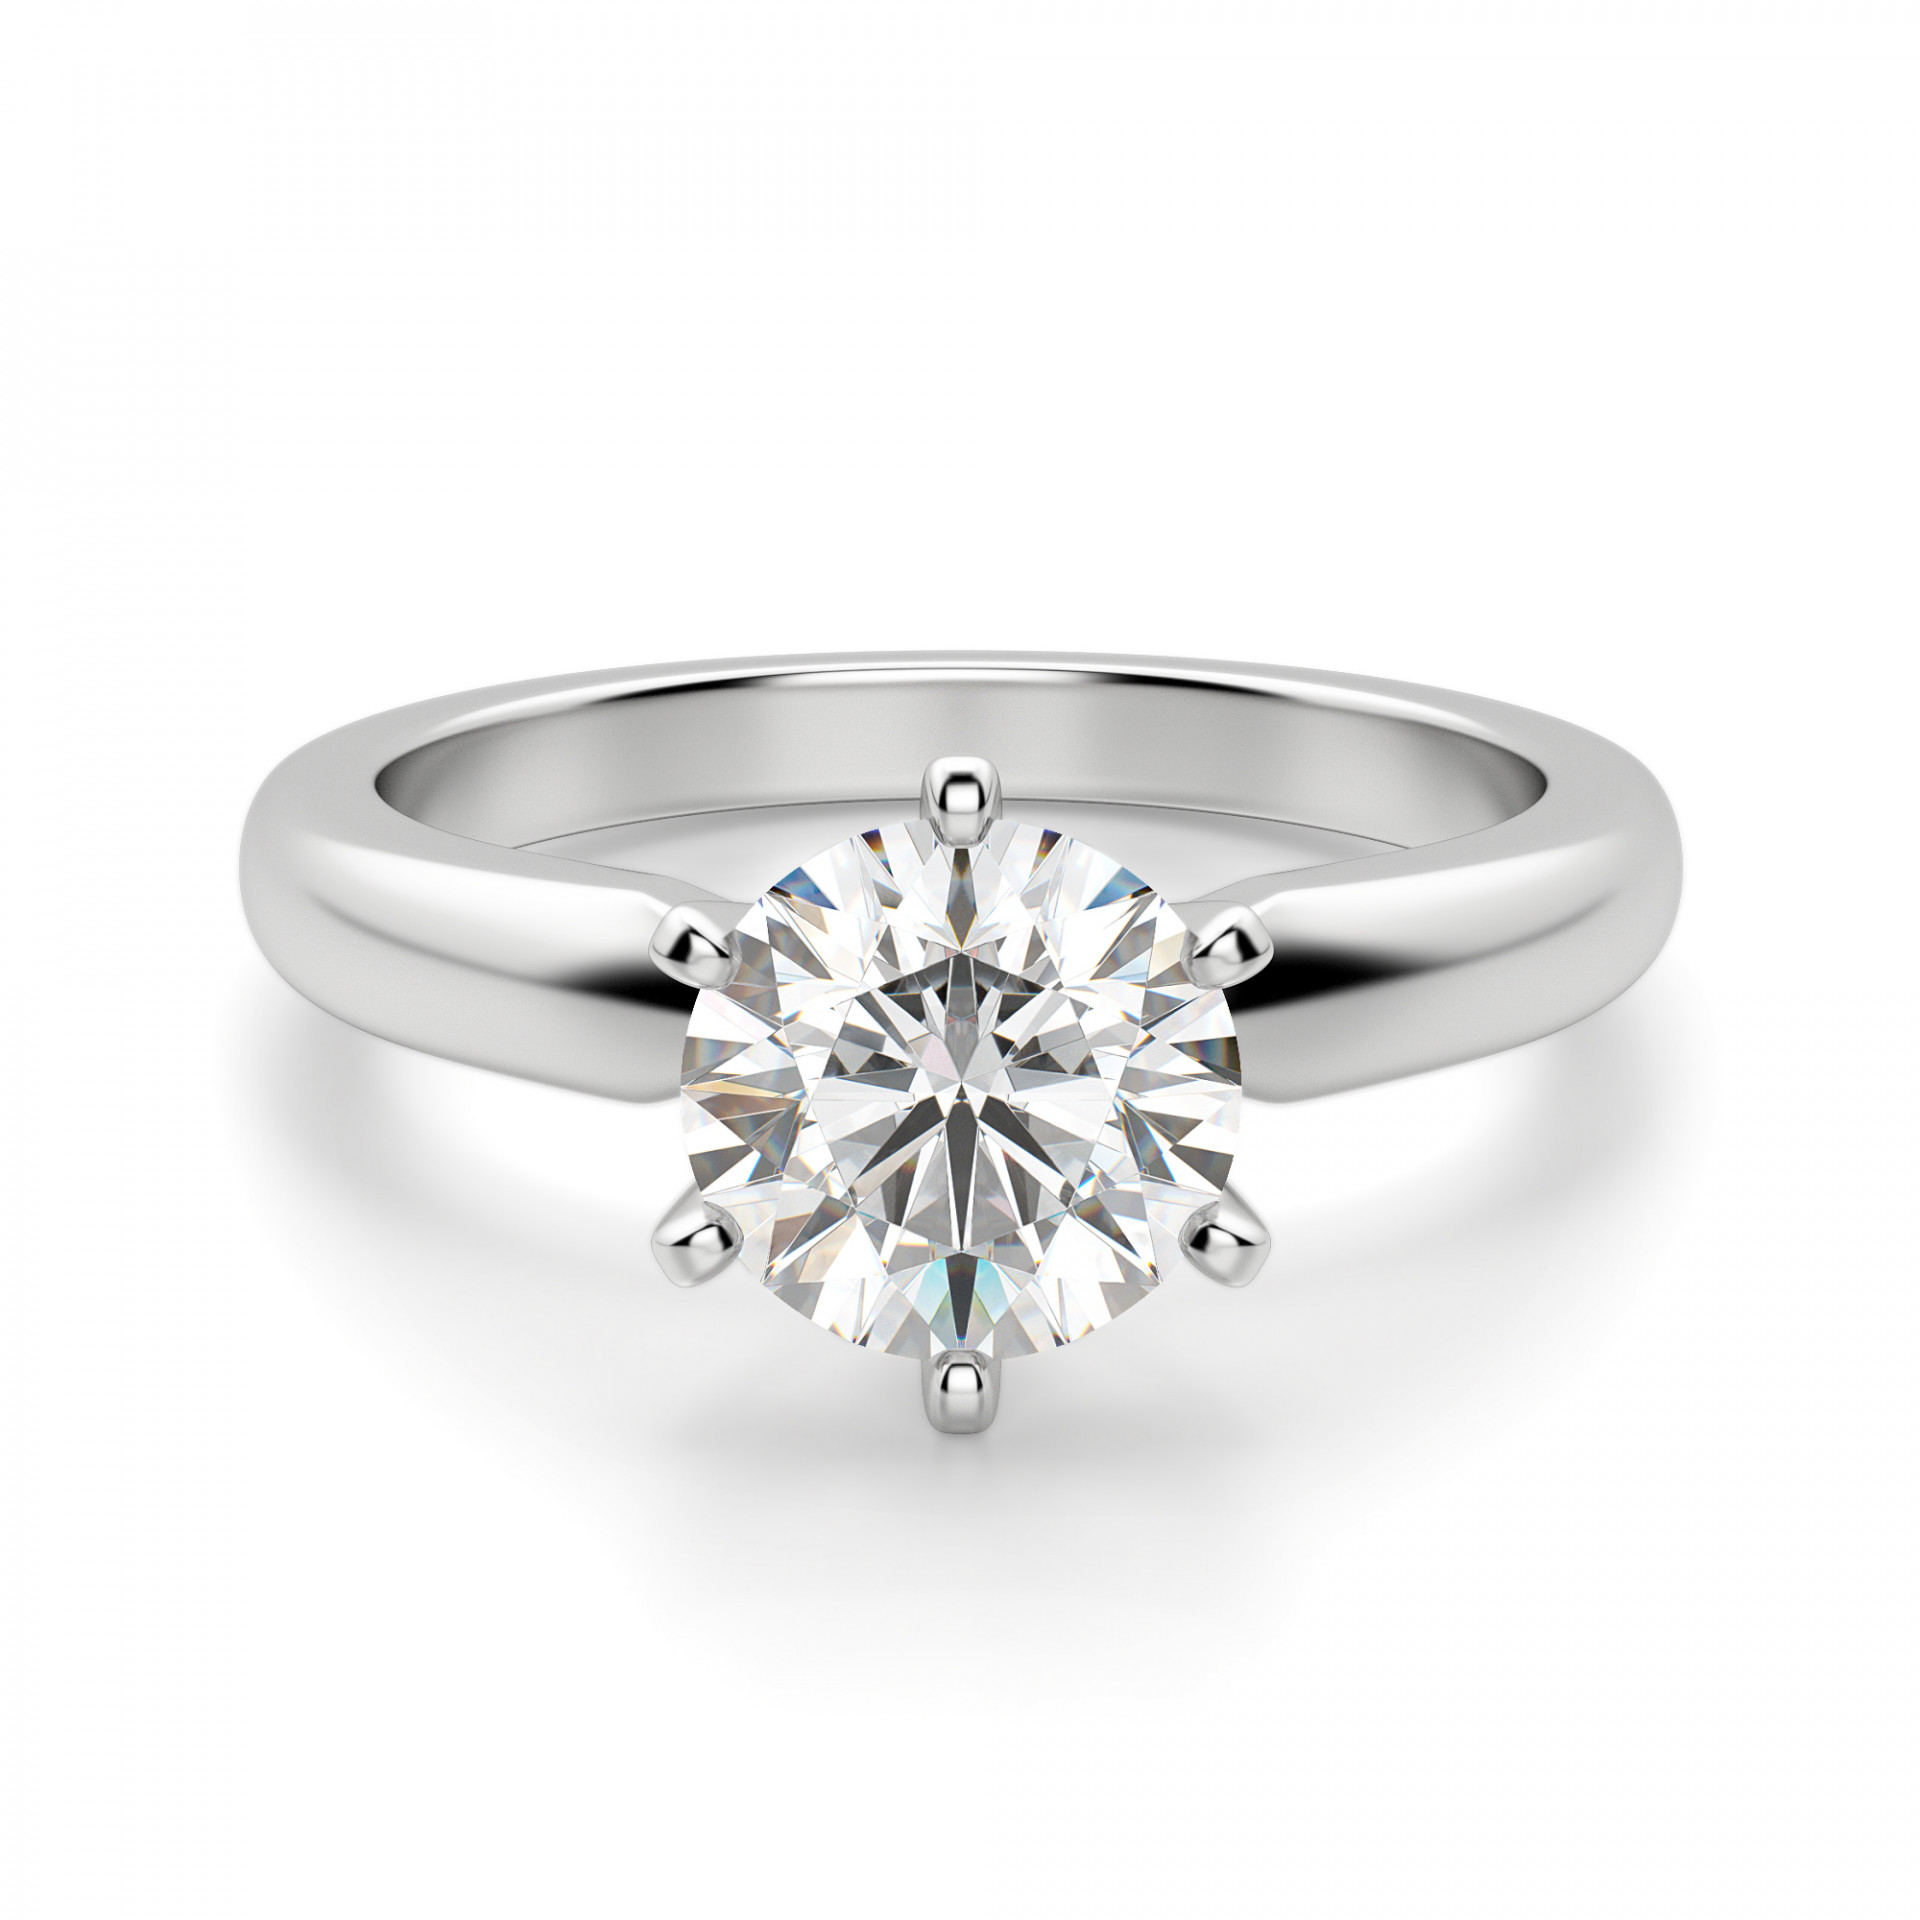 Solitaire Tiffany Bands: Tiffany-Style 6-Prong